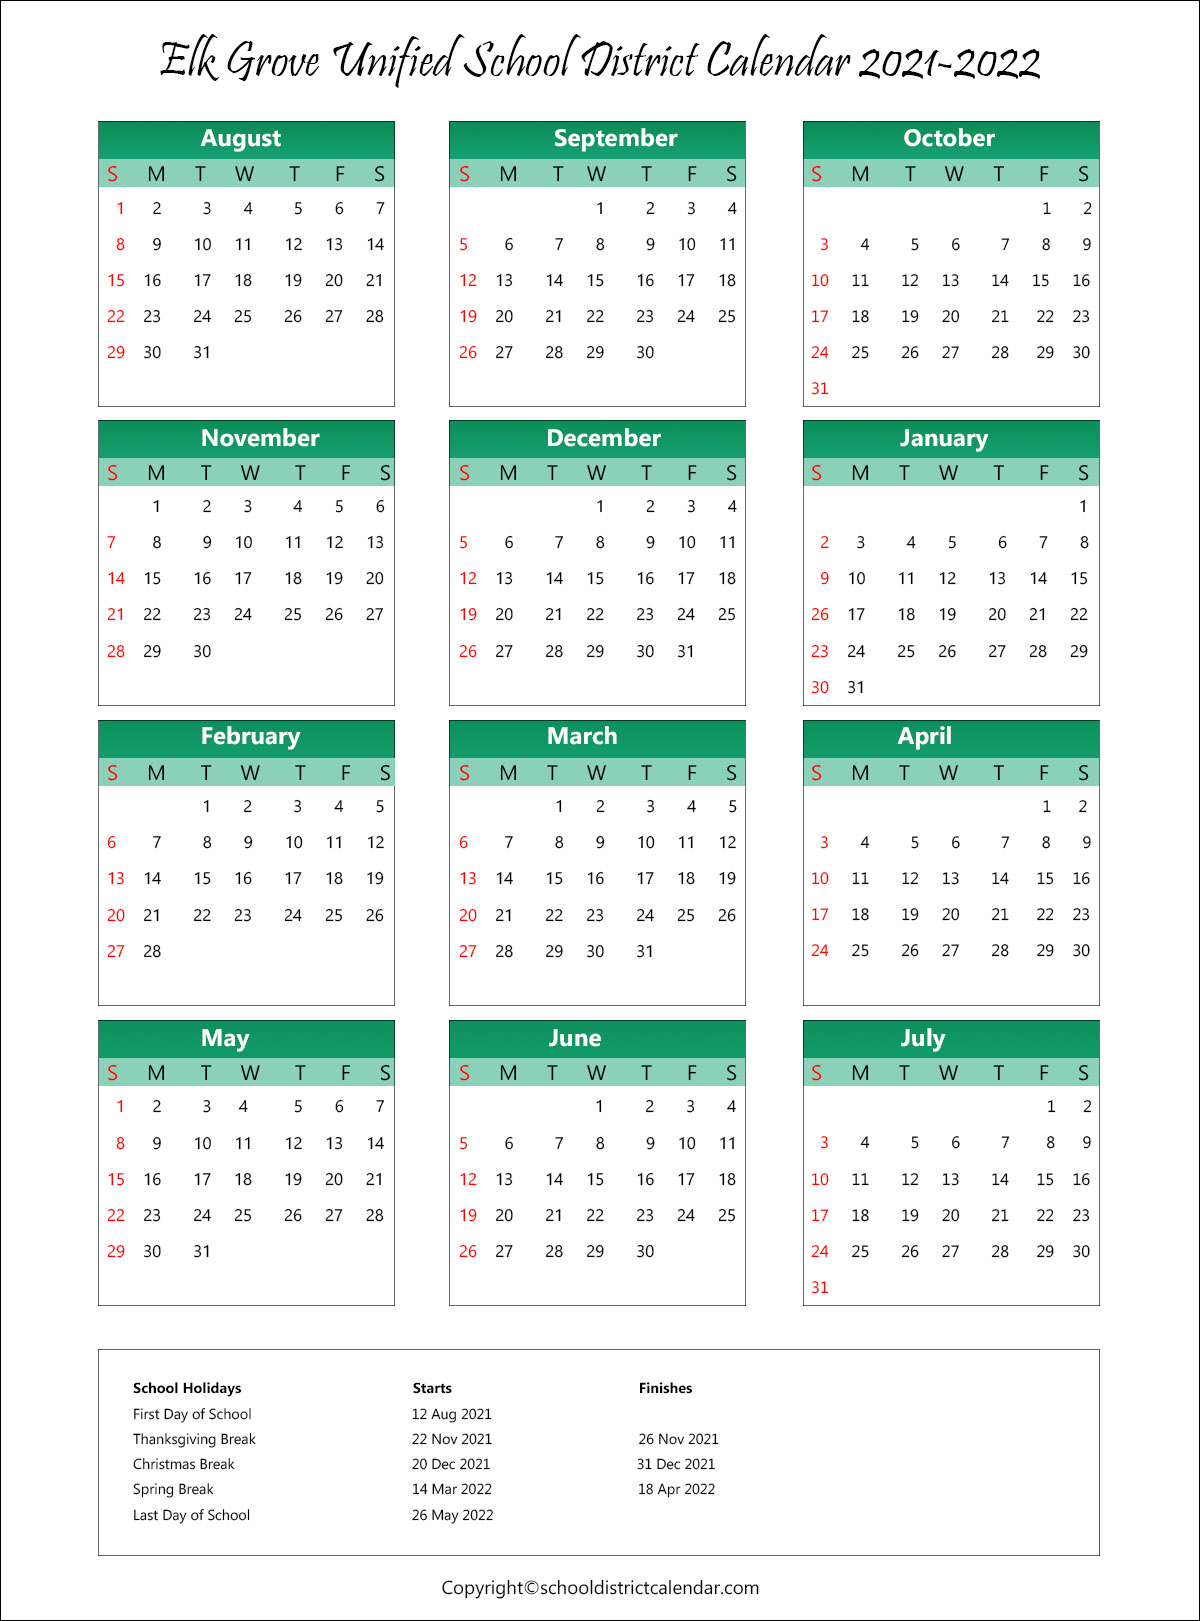 Elk Grove Unified School District, California Calendar Holidays 2021